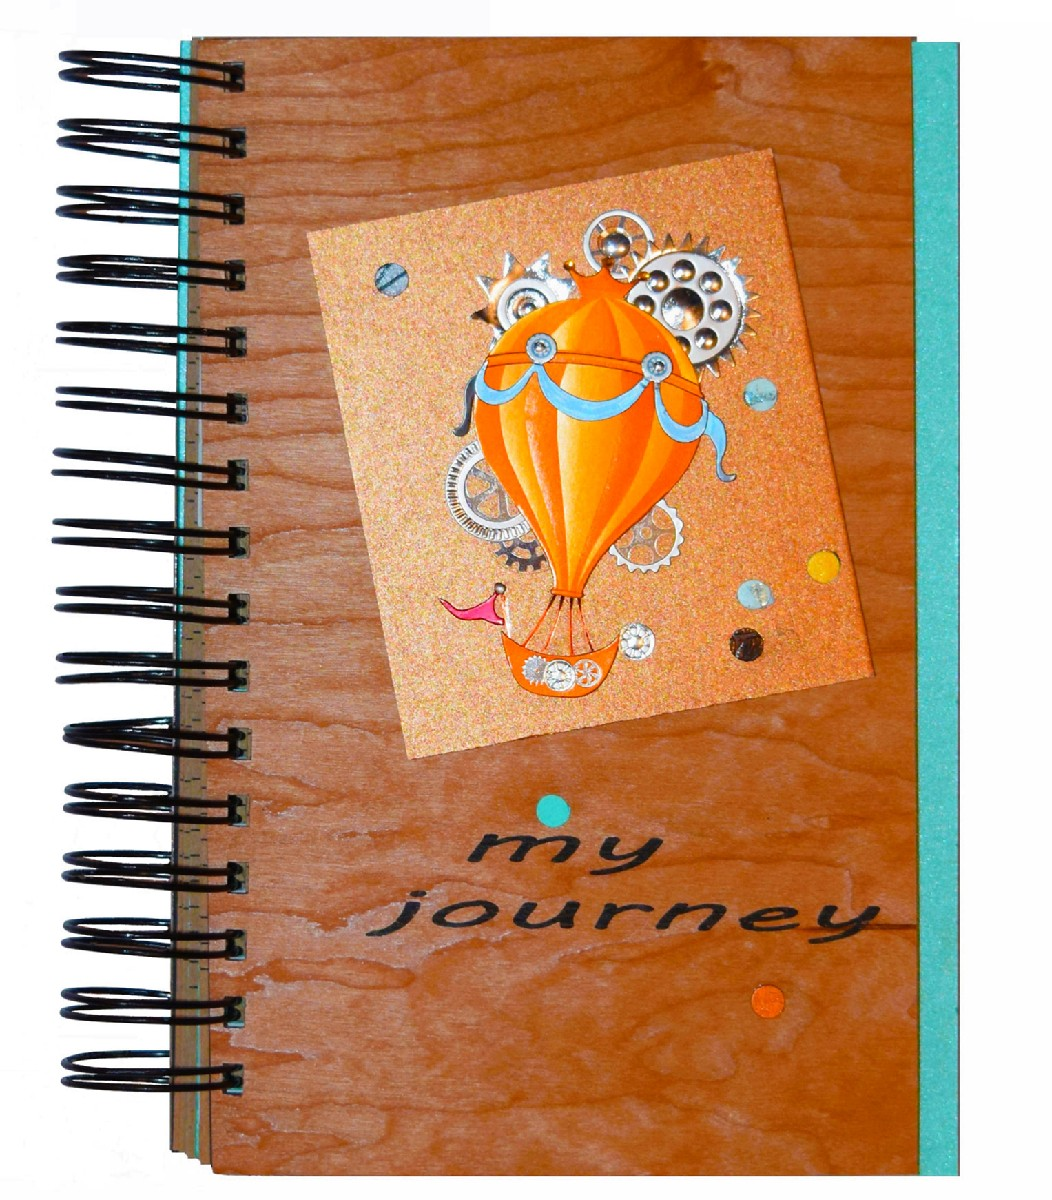 my journal - brown bag paper and more - 1Paper Papers My Journal Wood Paper 3a web - My Journal – Brown Bag Paper and more